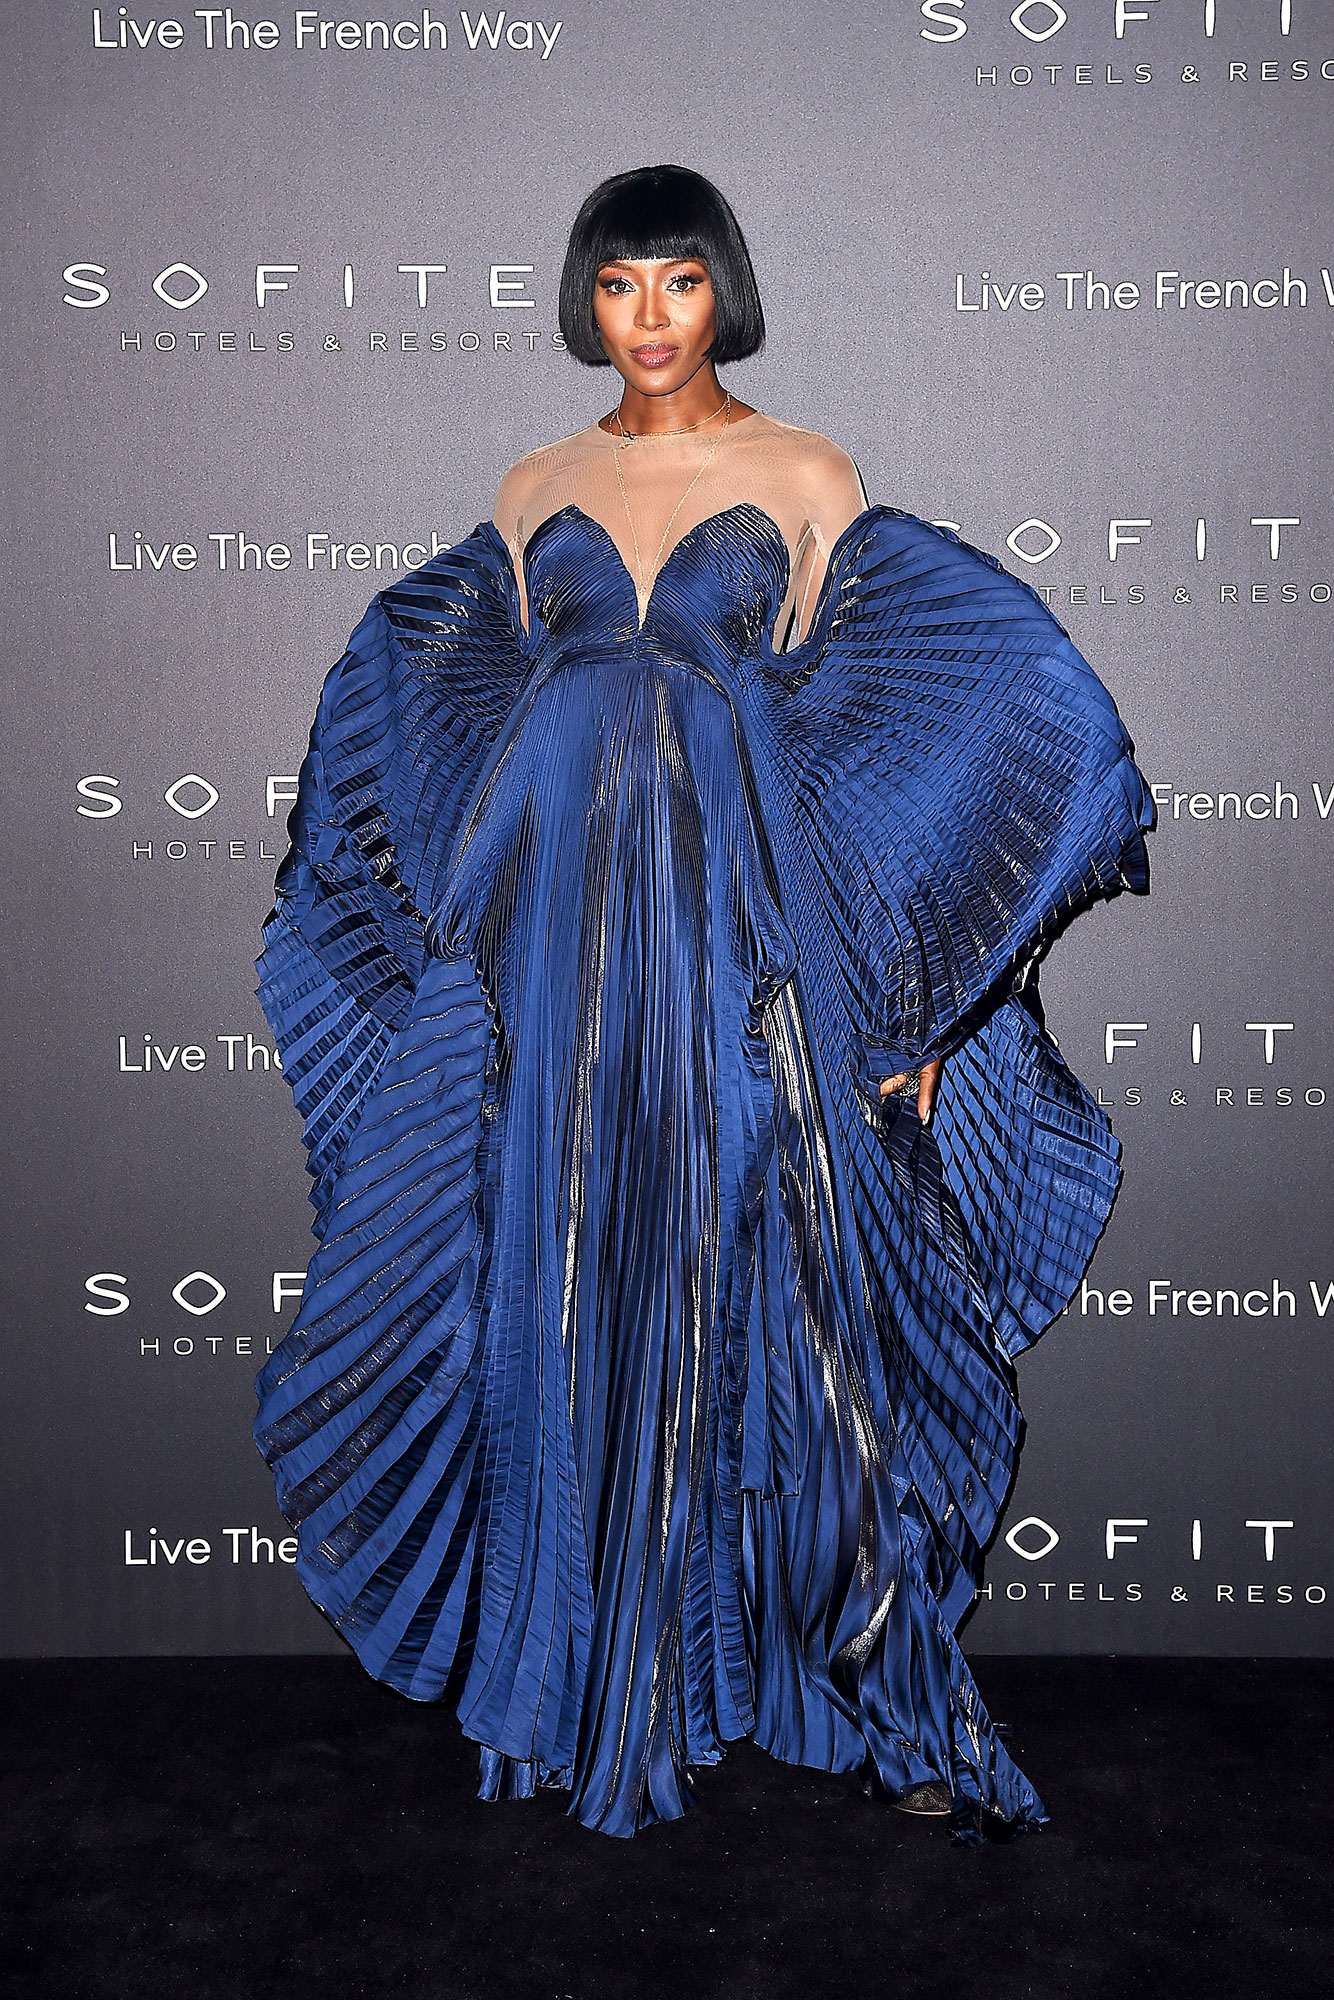 Iris van Herpen Naomi Campbell - In a hand-pleated crystal satin creation on Feb. 28.